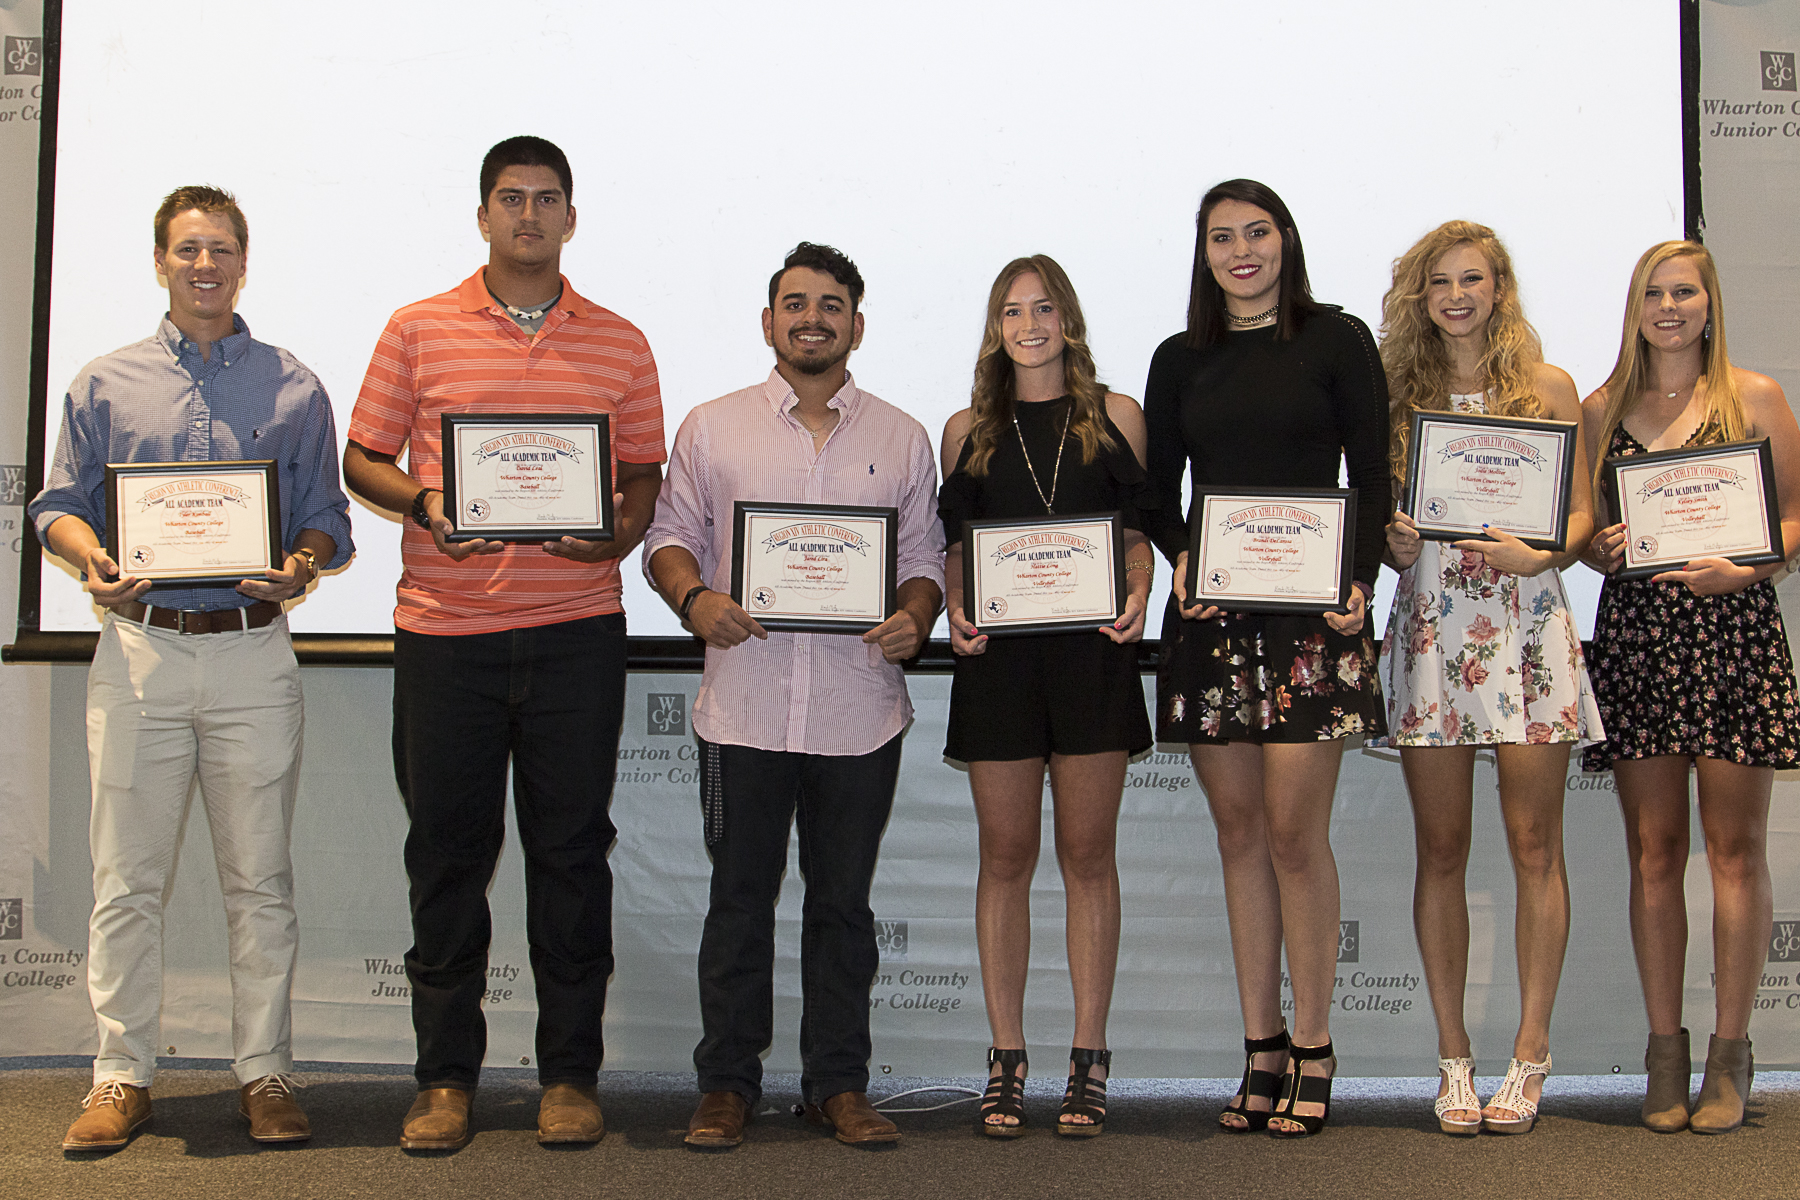 Wharton County Junior College student athletes were recognized for excellence both on and off the playing field at the 54th Annual Athletic Banquet,